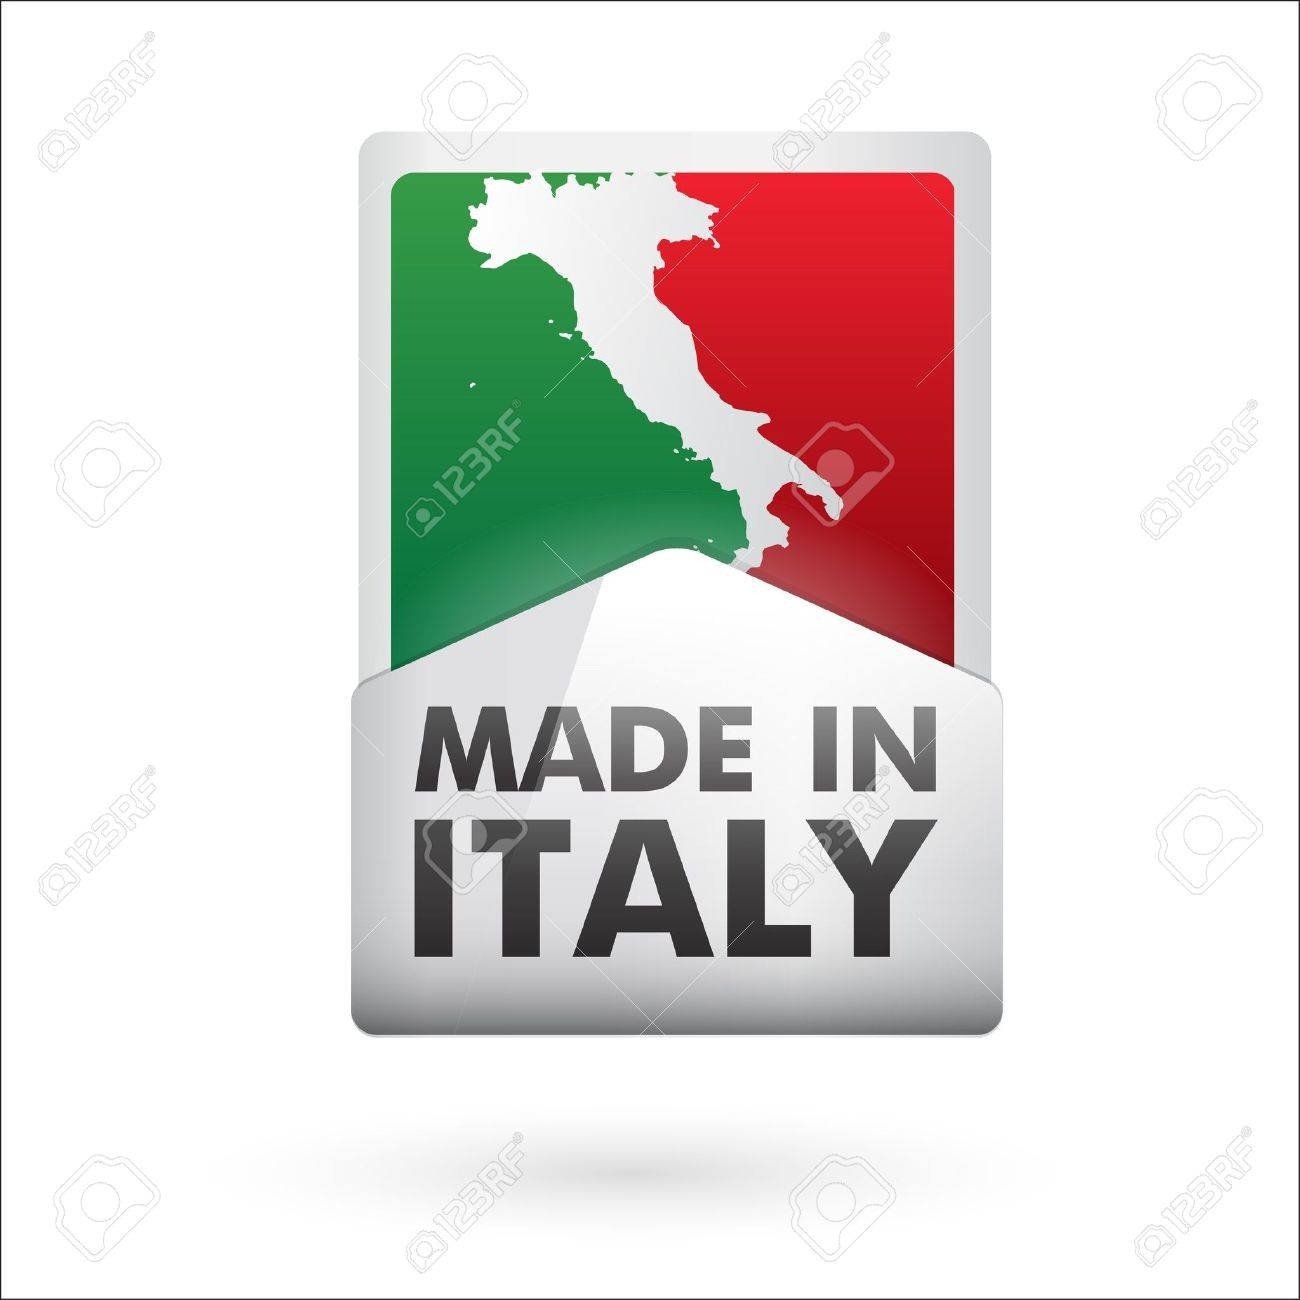 made in italy - 17477398